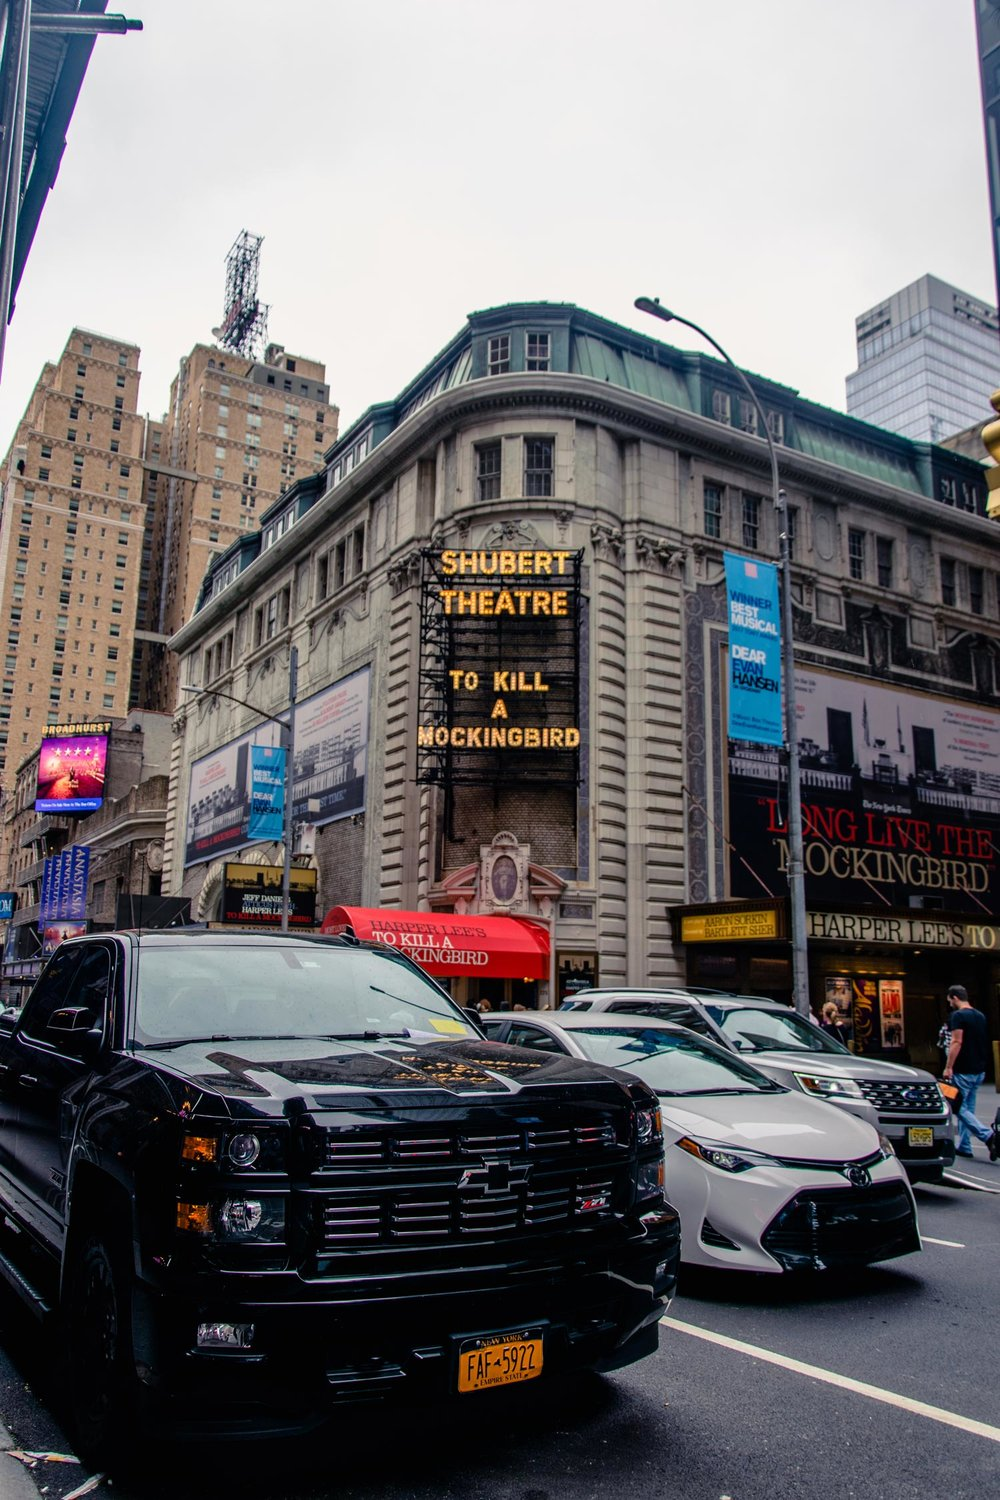 Broadway_New_York_City_2018_Ruo_Ling_Lu.jpg